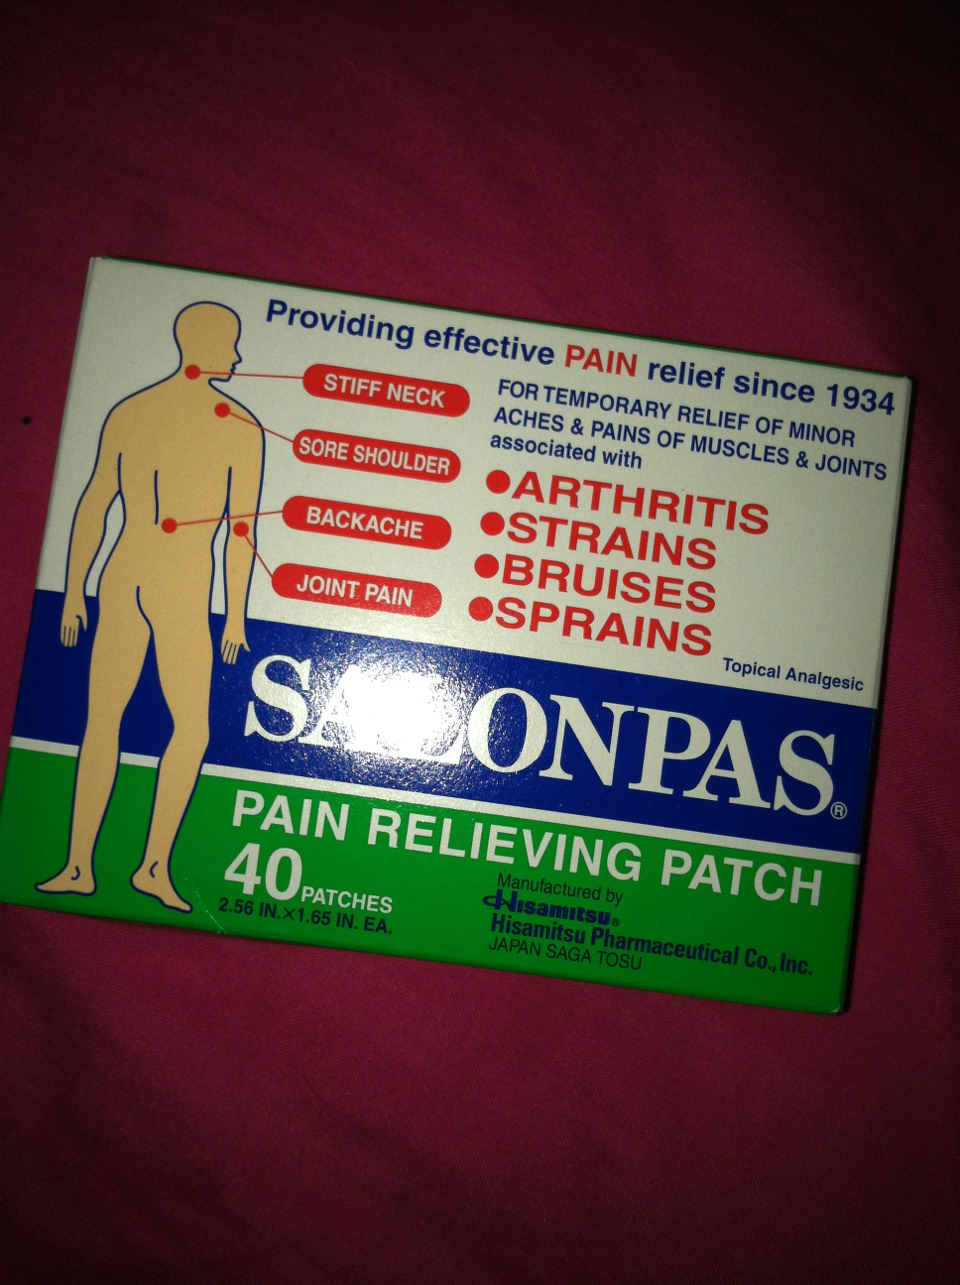 If you have back pain or cramp apply the patch right on the area that is hurting it works like wonder! Great for healing bruises, & sprains. Not just what I had used it for, but also great for headache/coughing too. Apply a small patch on your neck or your forehead it will sooth your needs.